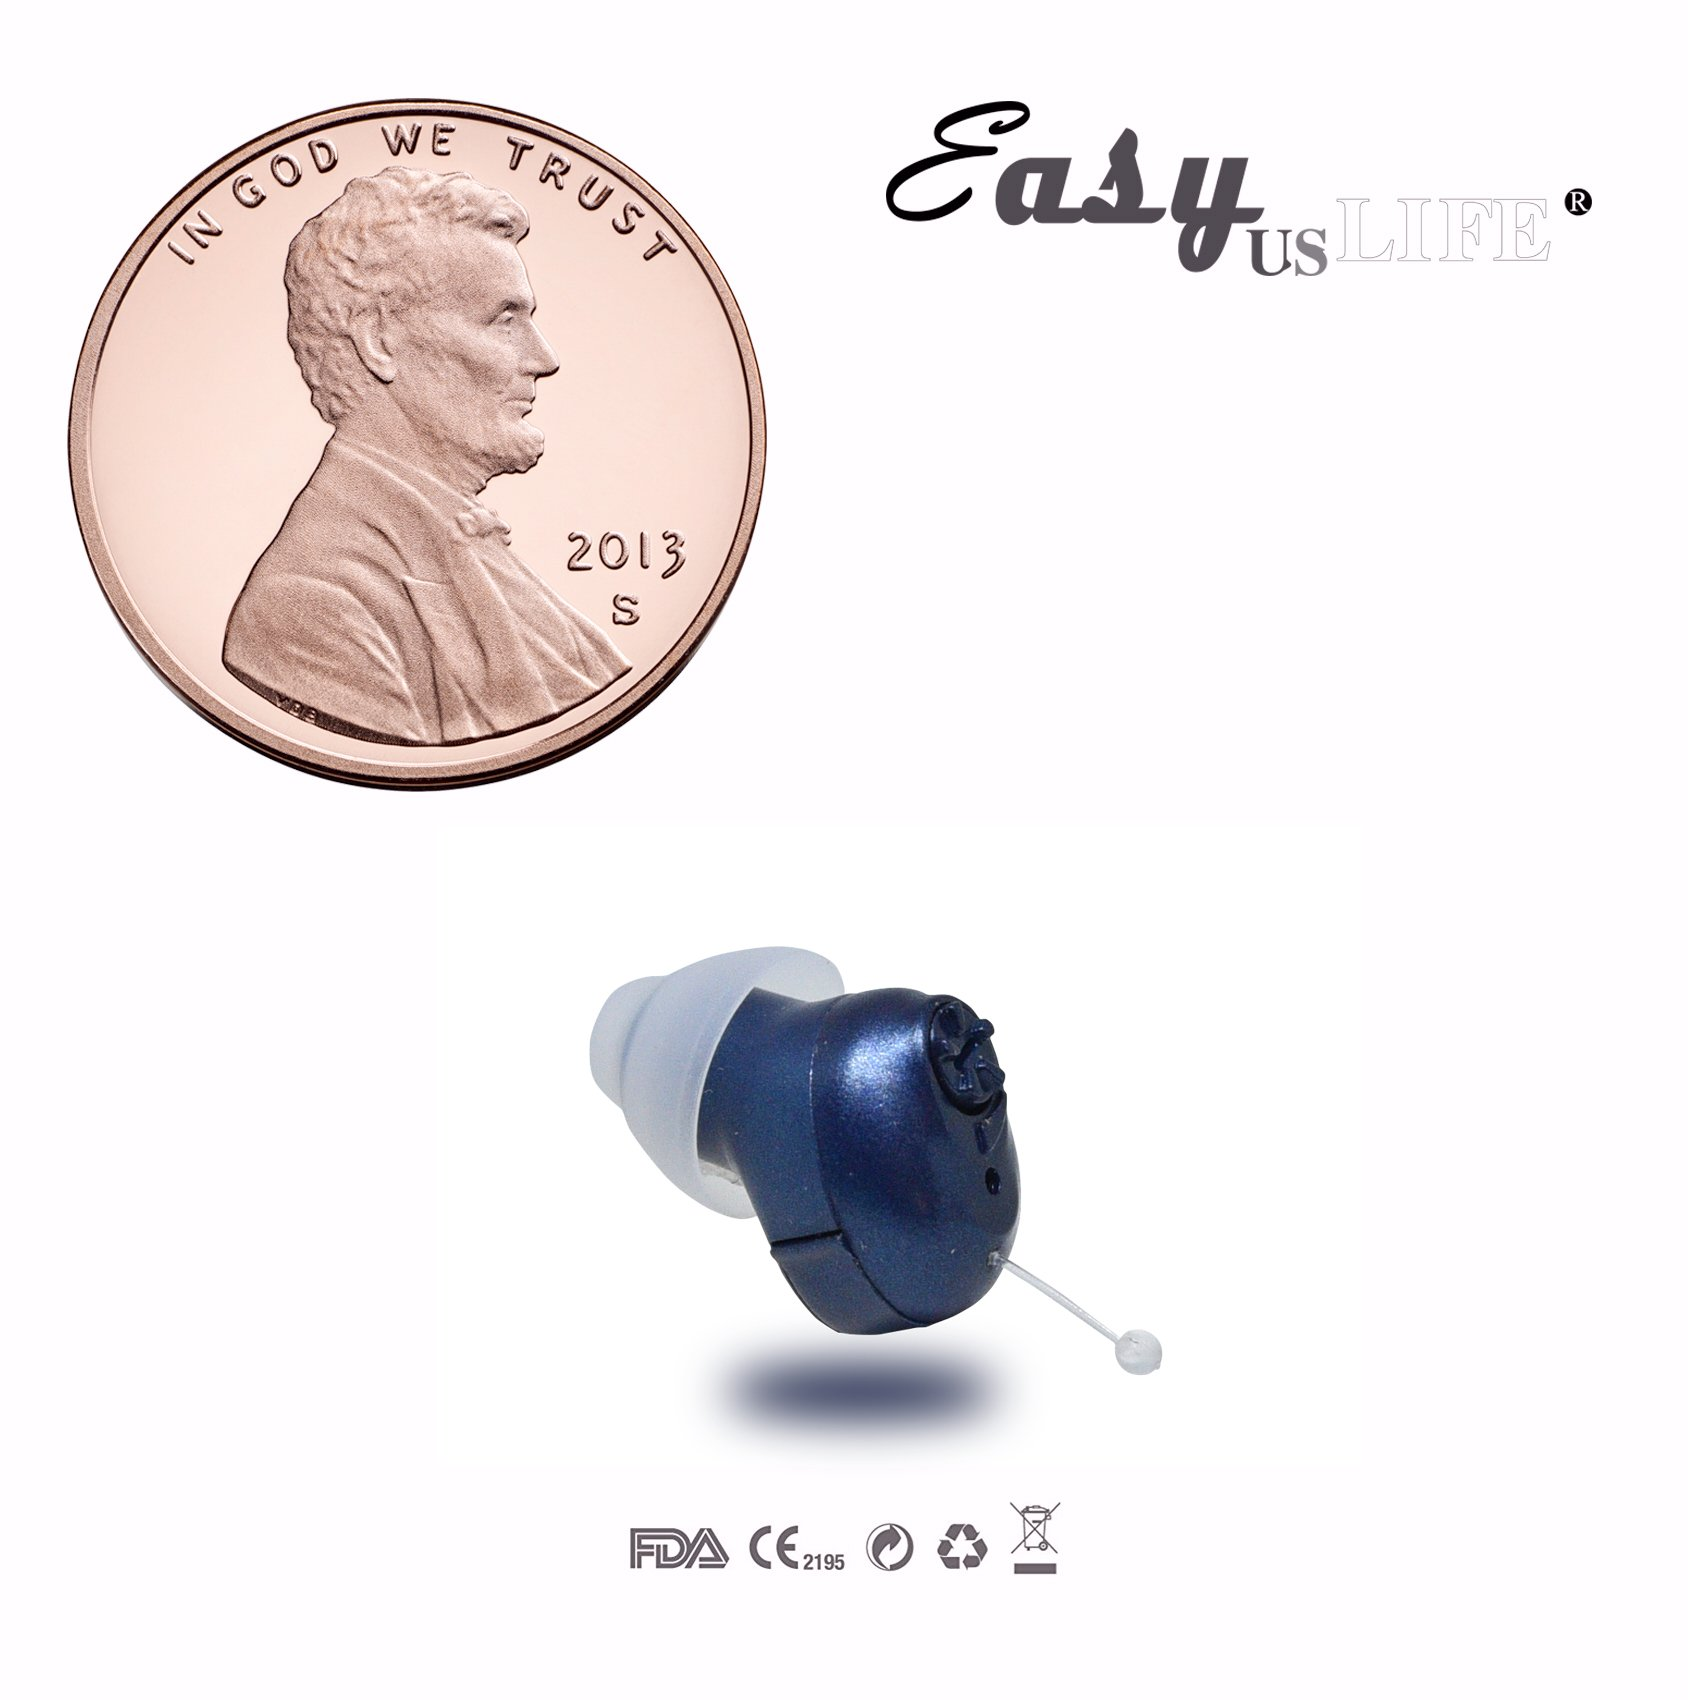 Super Mini,Dark Blue,in-The-Canal (ITC), New Digital Hearing Amplifier, Clearly Technology, Interchangeable, Suitable for Men and Women, Trademark: Easyuslife